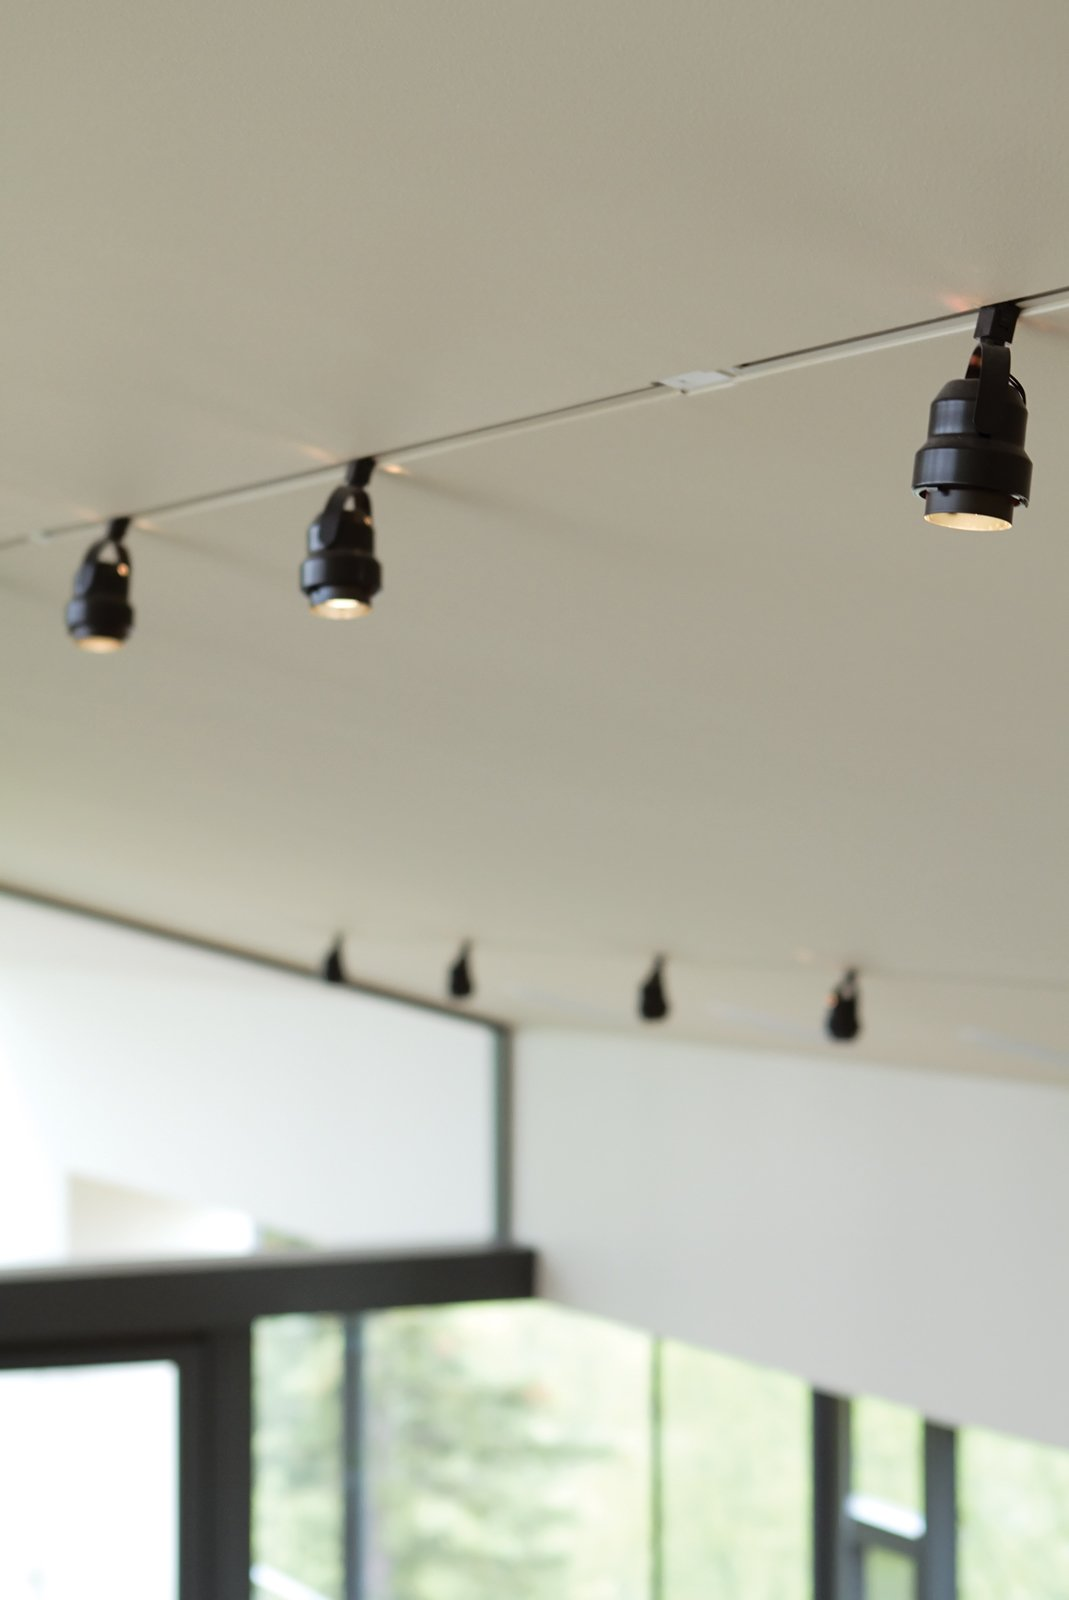 """Back on TrackIn cold places, recessed lighting in a vaulted ceiling can lead to water vapor problems in the roof. So Bull inset standard surface-mounted Juno track lights into a notch. """"With a flush track the common track light looks much more sophisticated,"""" he observes.  junolightinggroup.com  Photo 9 of 10 in An Epic Plot"""